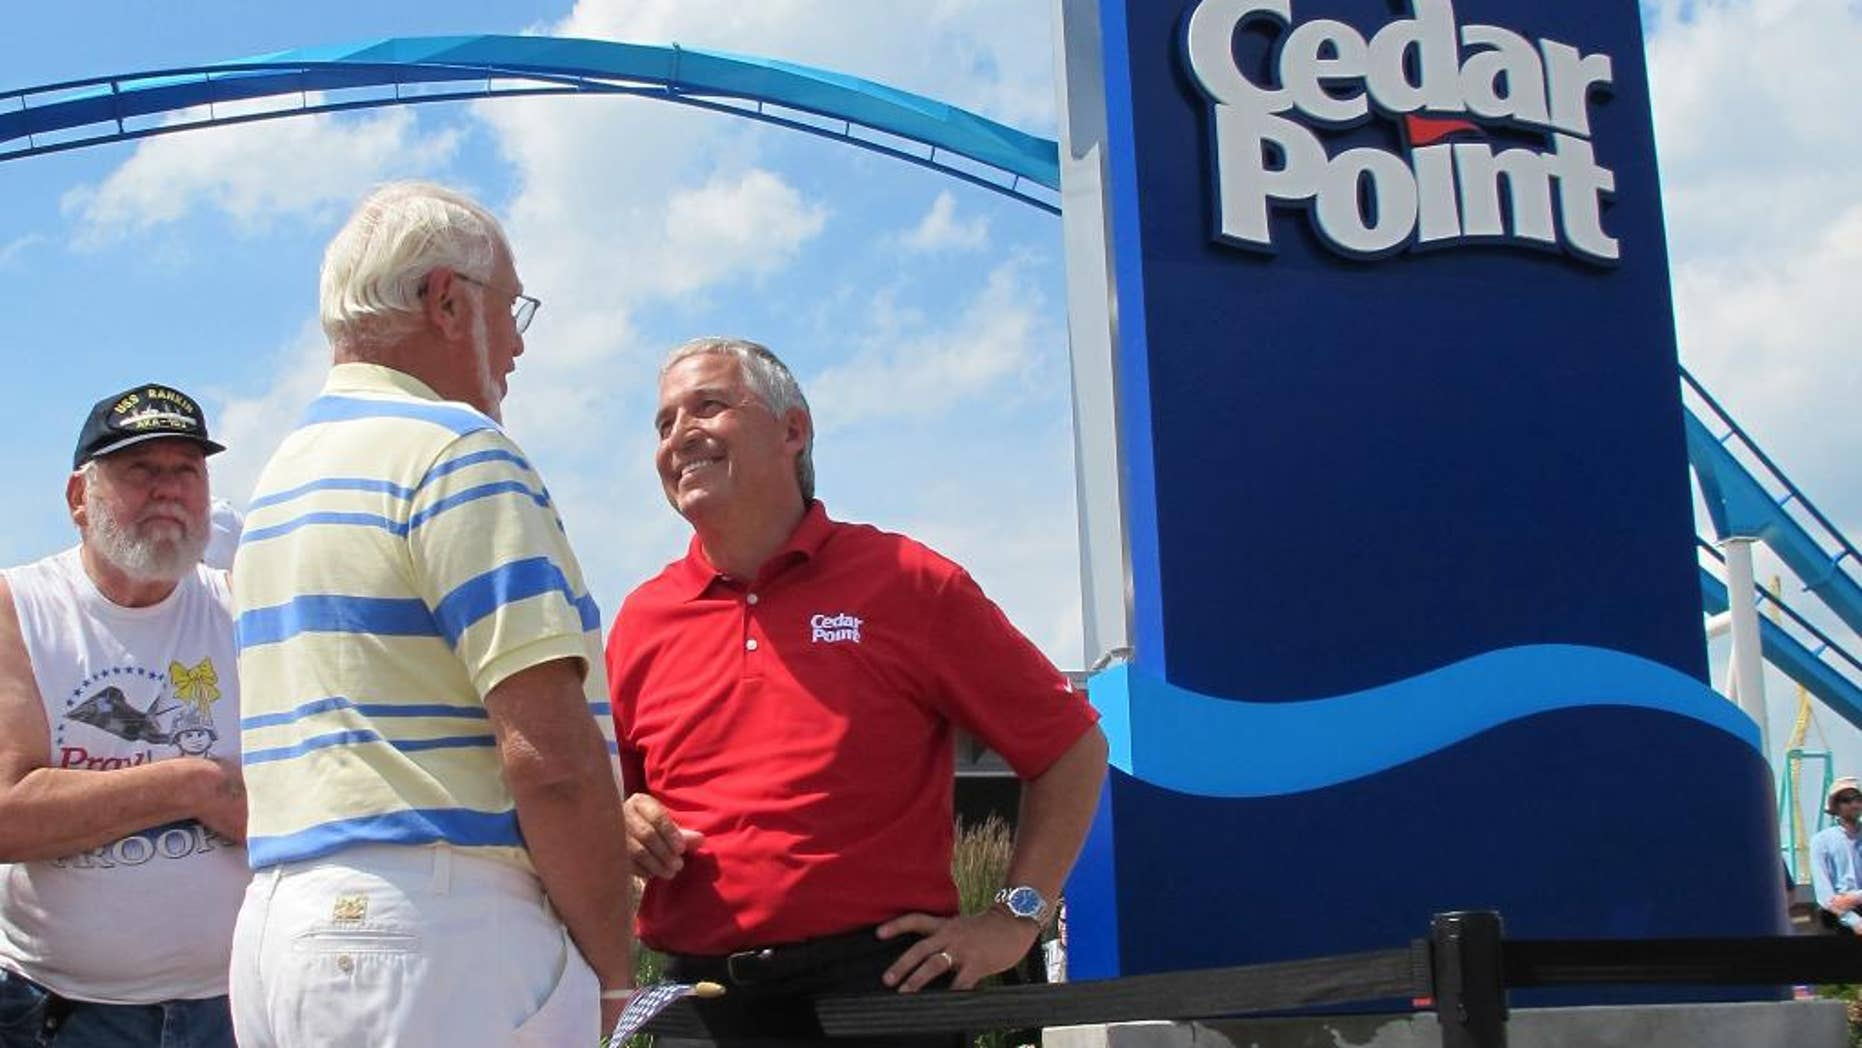 FILE - In this July 2, 2014, file photo, Matt Ouimet, chief executive of Cedar Fair Entertainment Co., greets a guest at Cedar Point amusement park, in Sandusky, Ohio. A man who entered a restricted area at the amusement park to look for a lost cellphone has been struck by a roller coaster and killed Thursday, Aug. 13, 2015. (AP Photo/John Seewer, File)